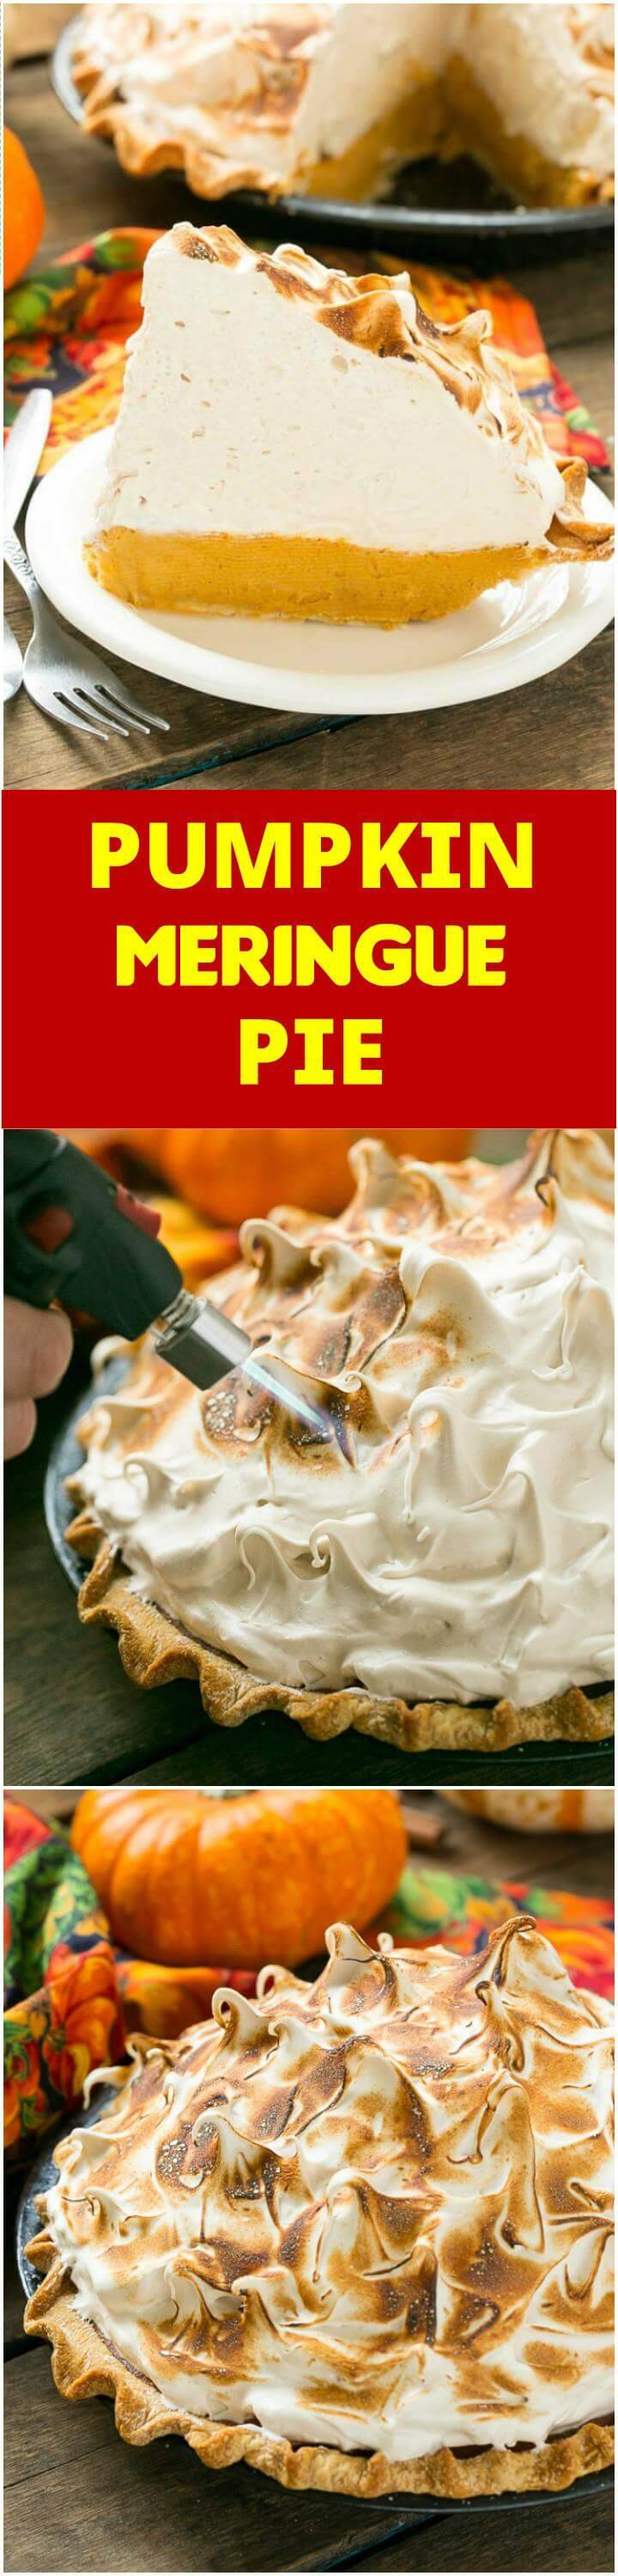 easy pumpkin meringue pie